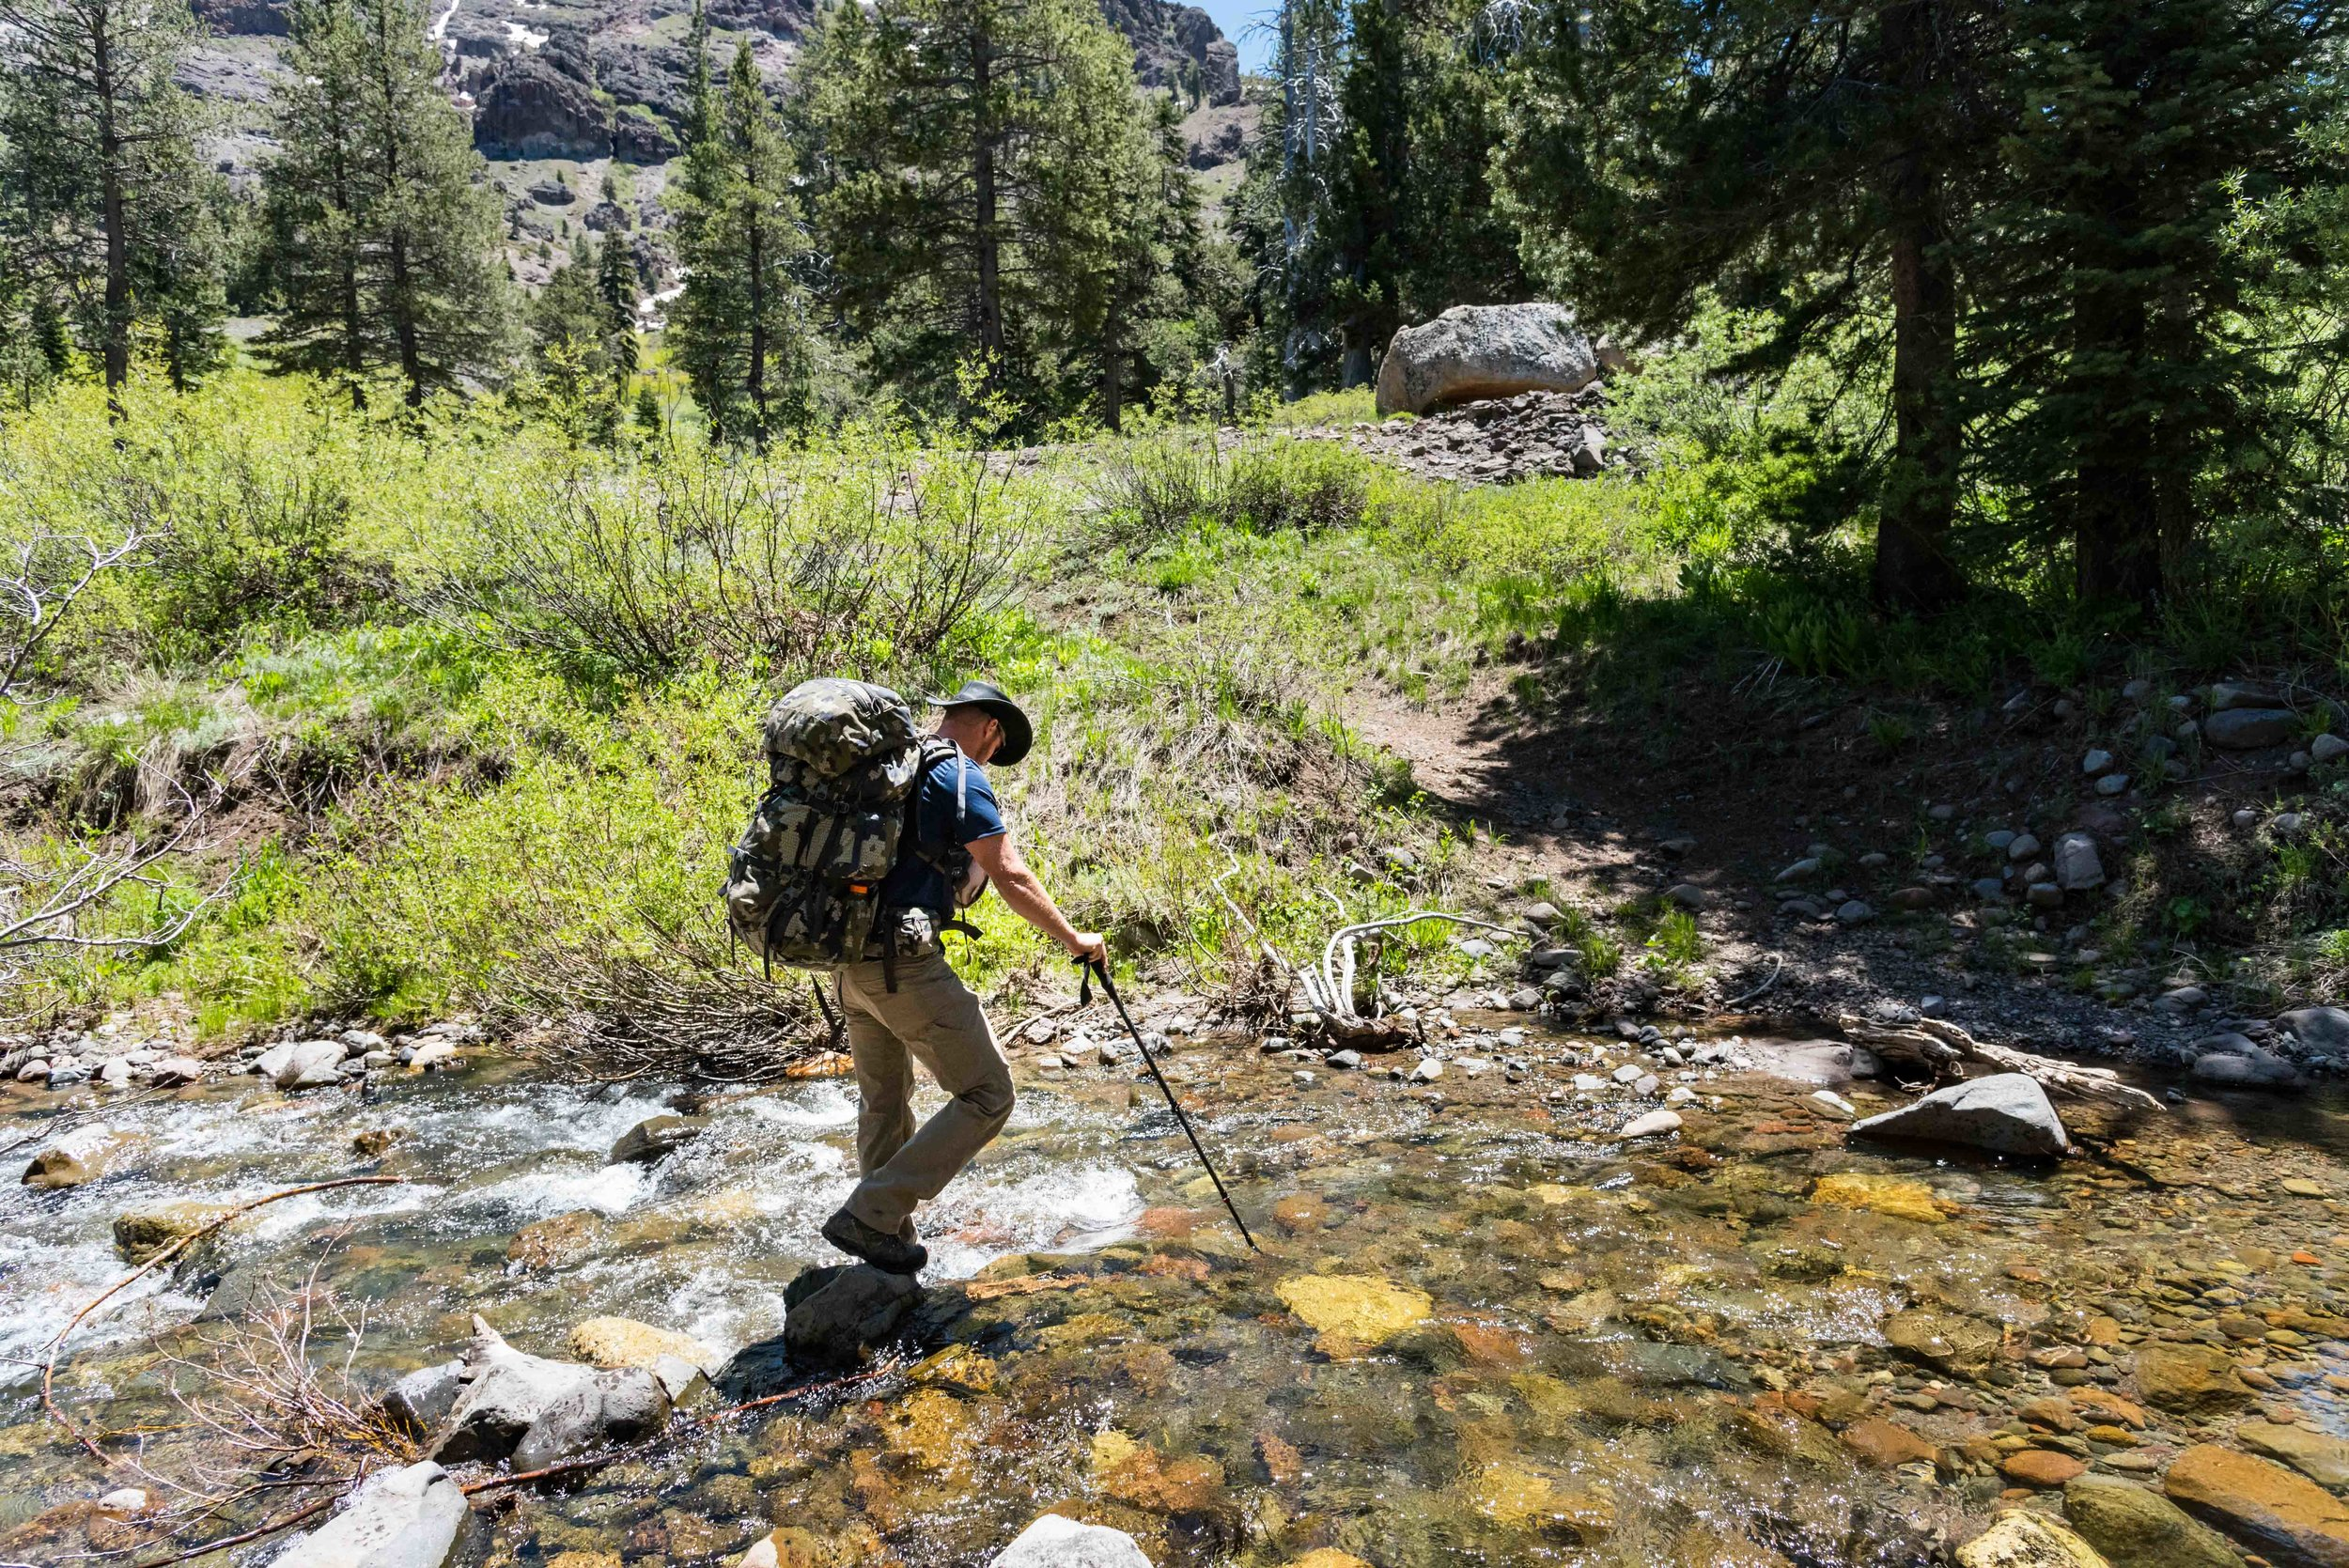 The first of many stream crossings.